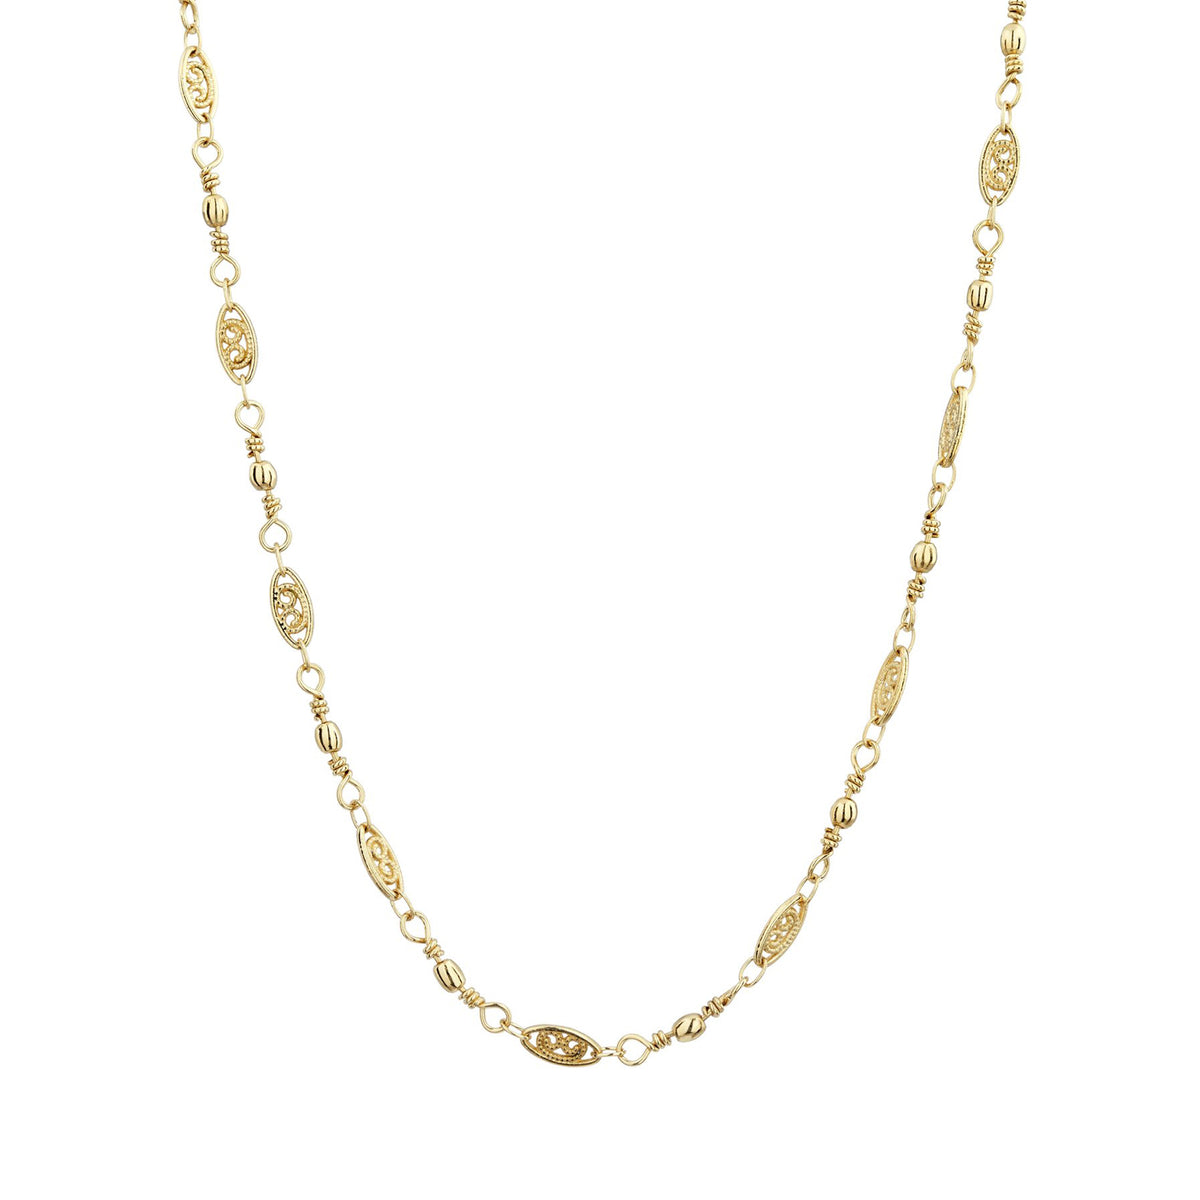 Louise Chain Necklace